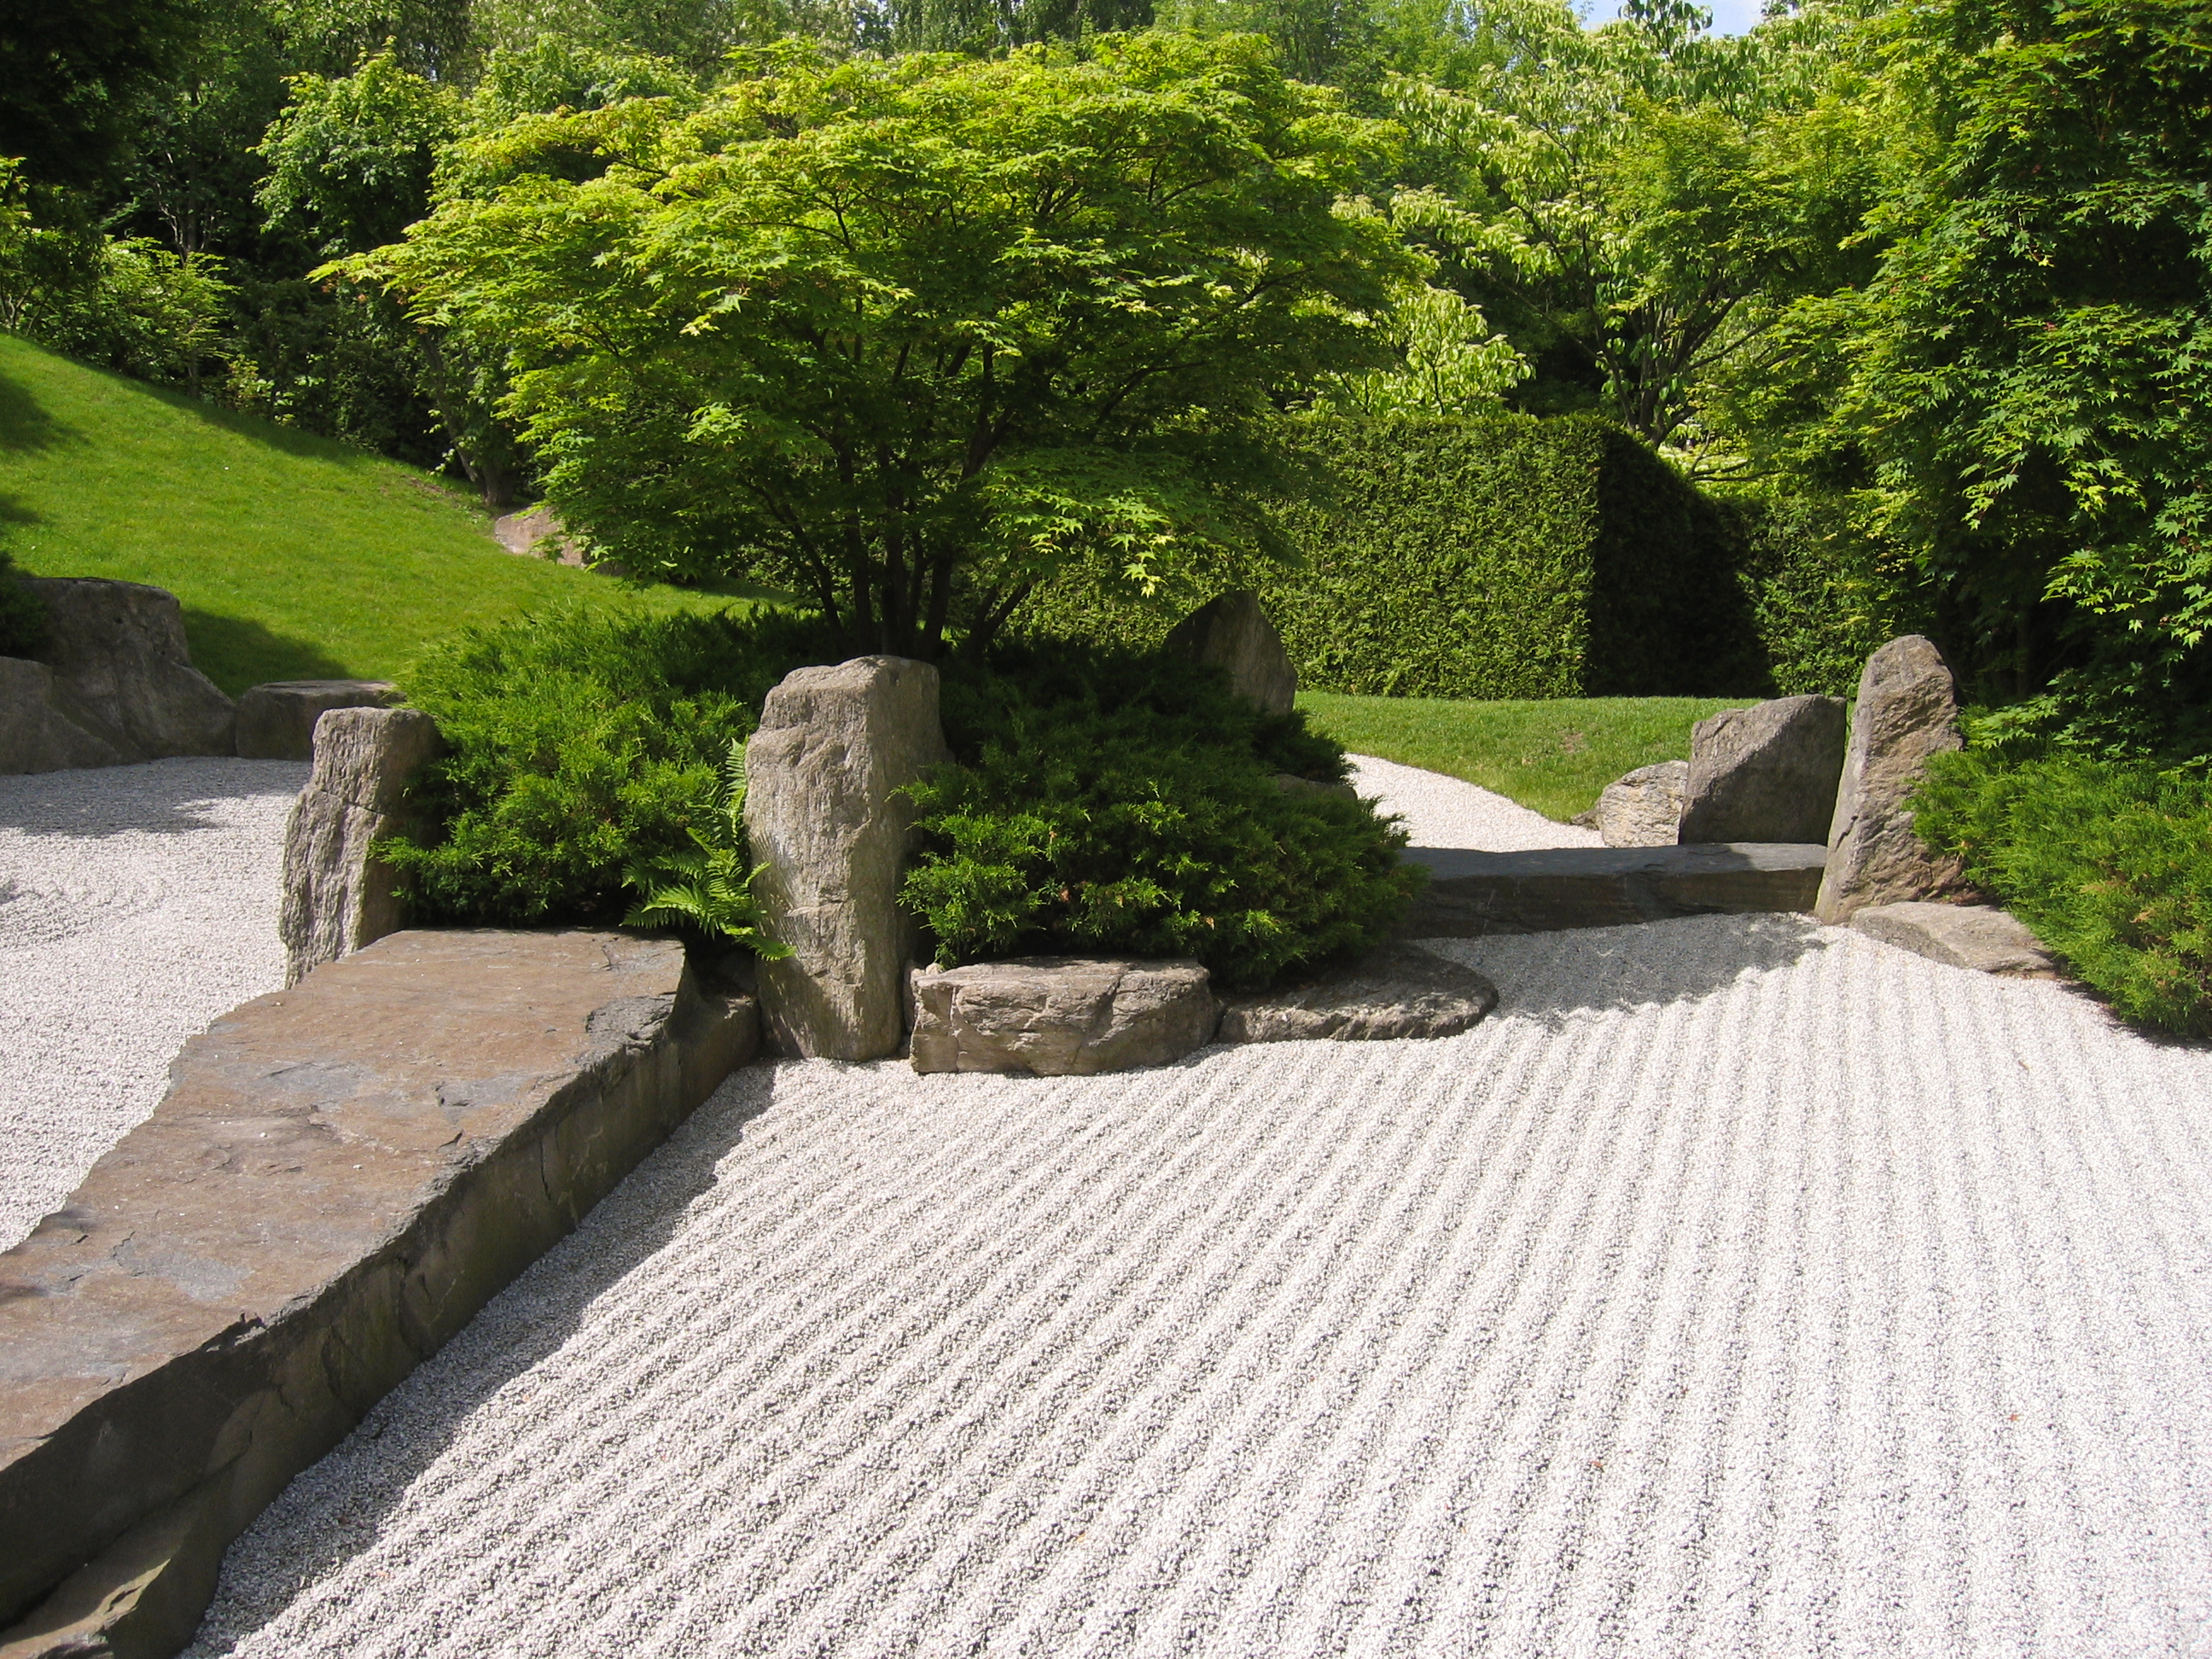 Garden design common garden stylesse landscape for Japanese garden backyard designs